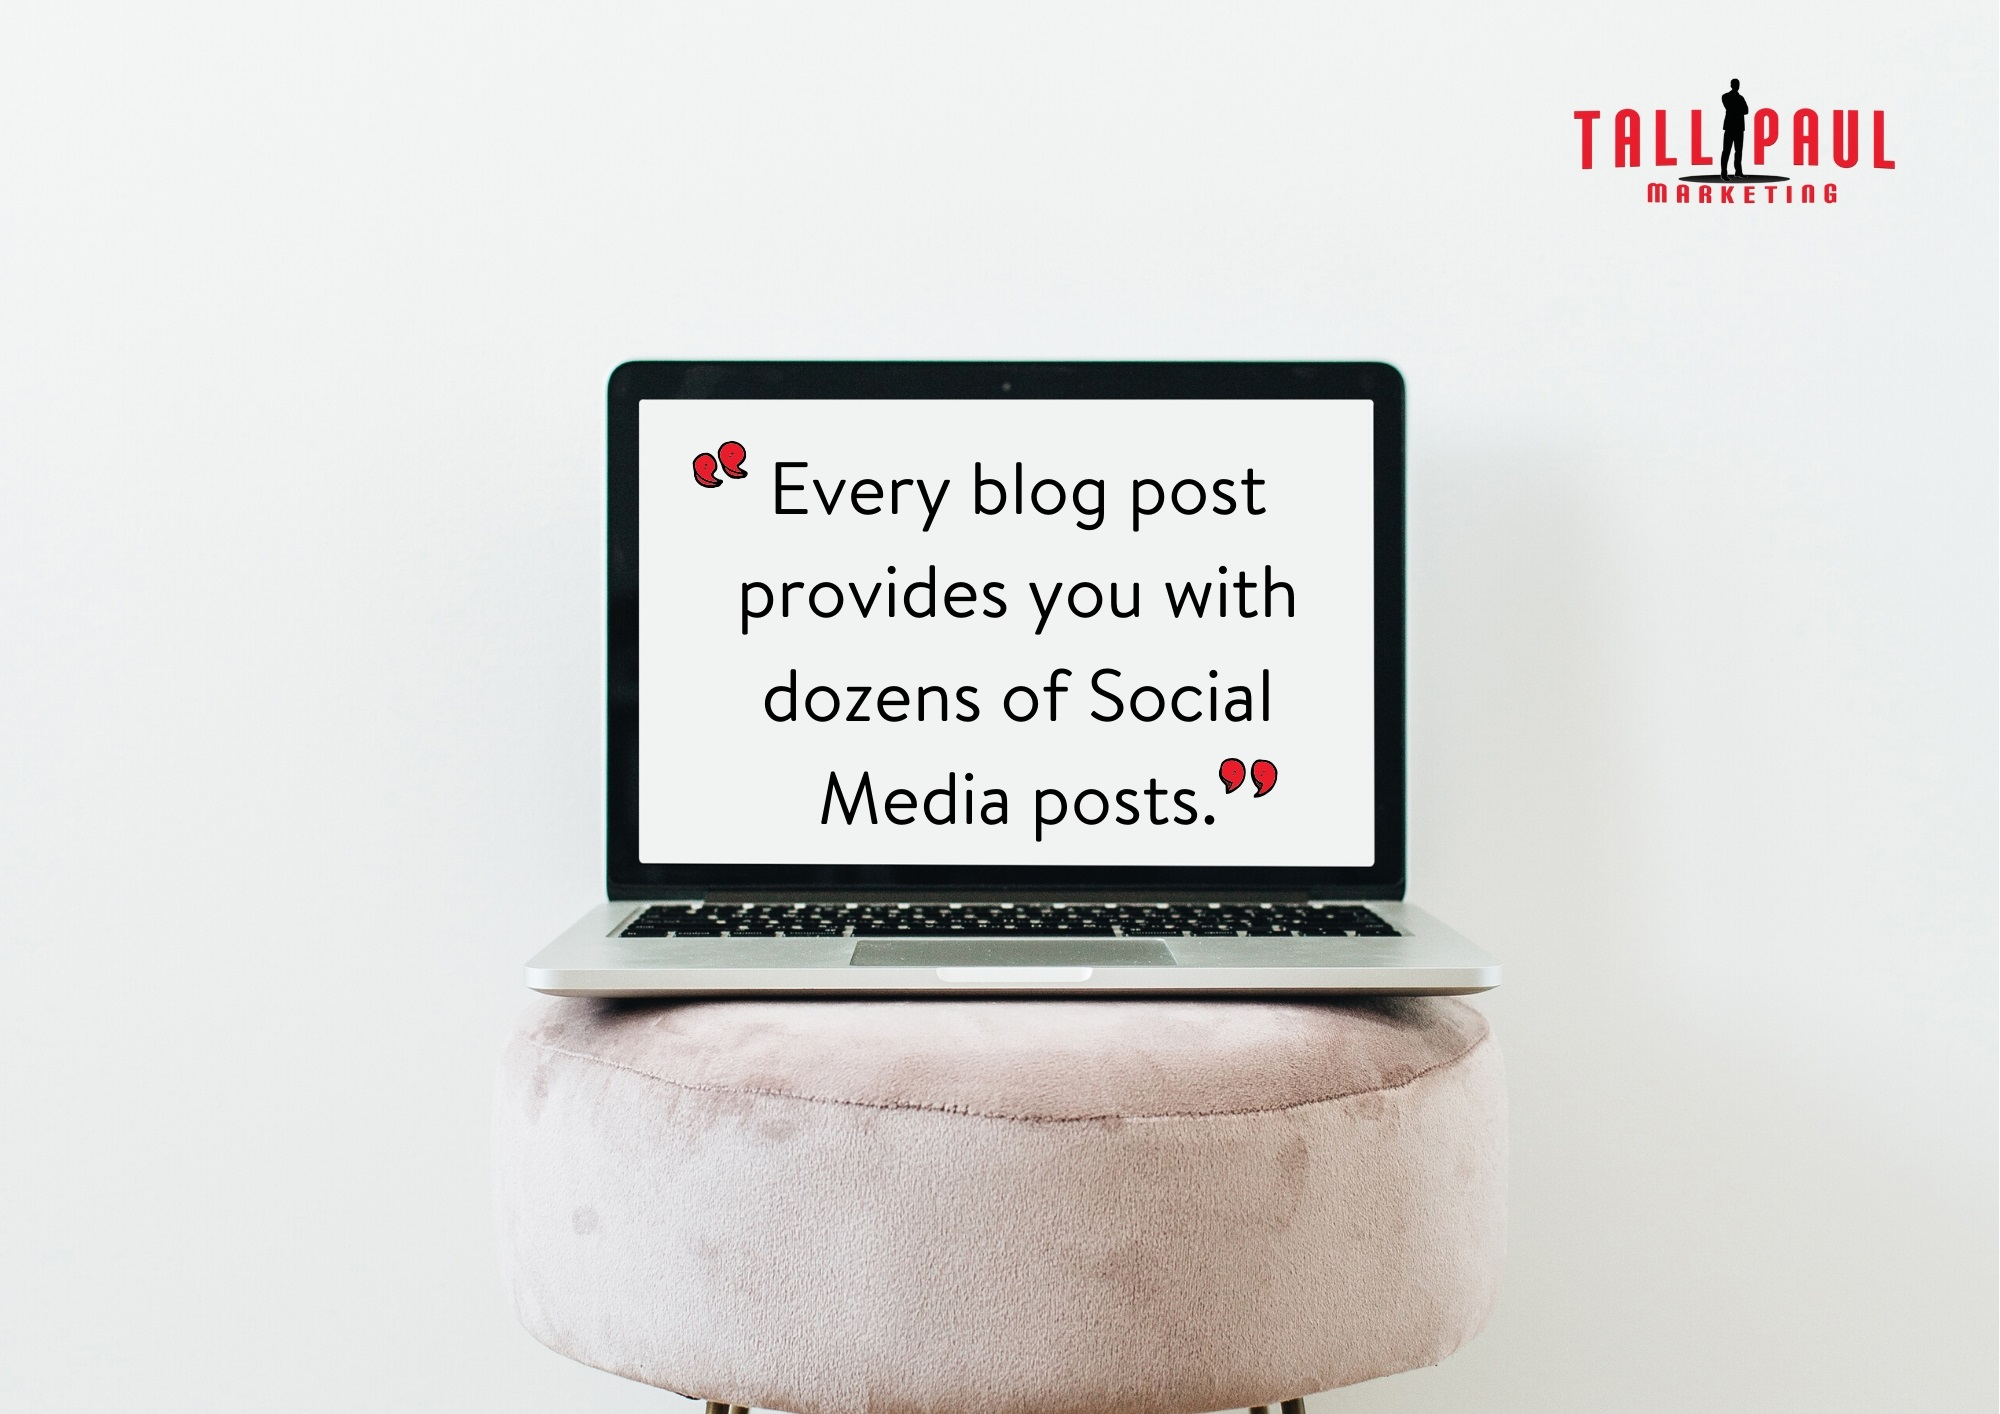 Every blog post provides you with dozens of Social Media posts - Northern Ireland Copywriter and Blog Writer